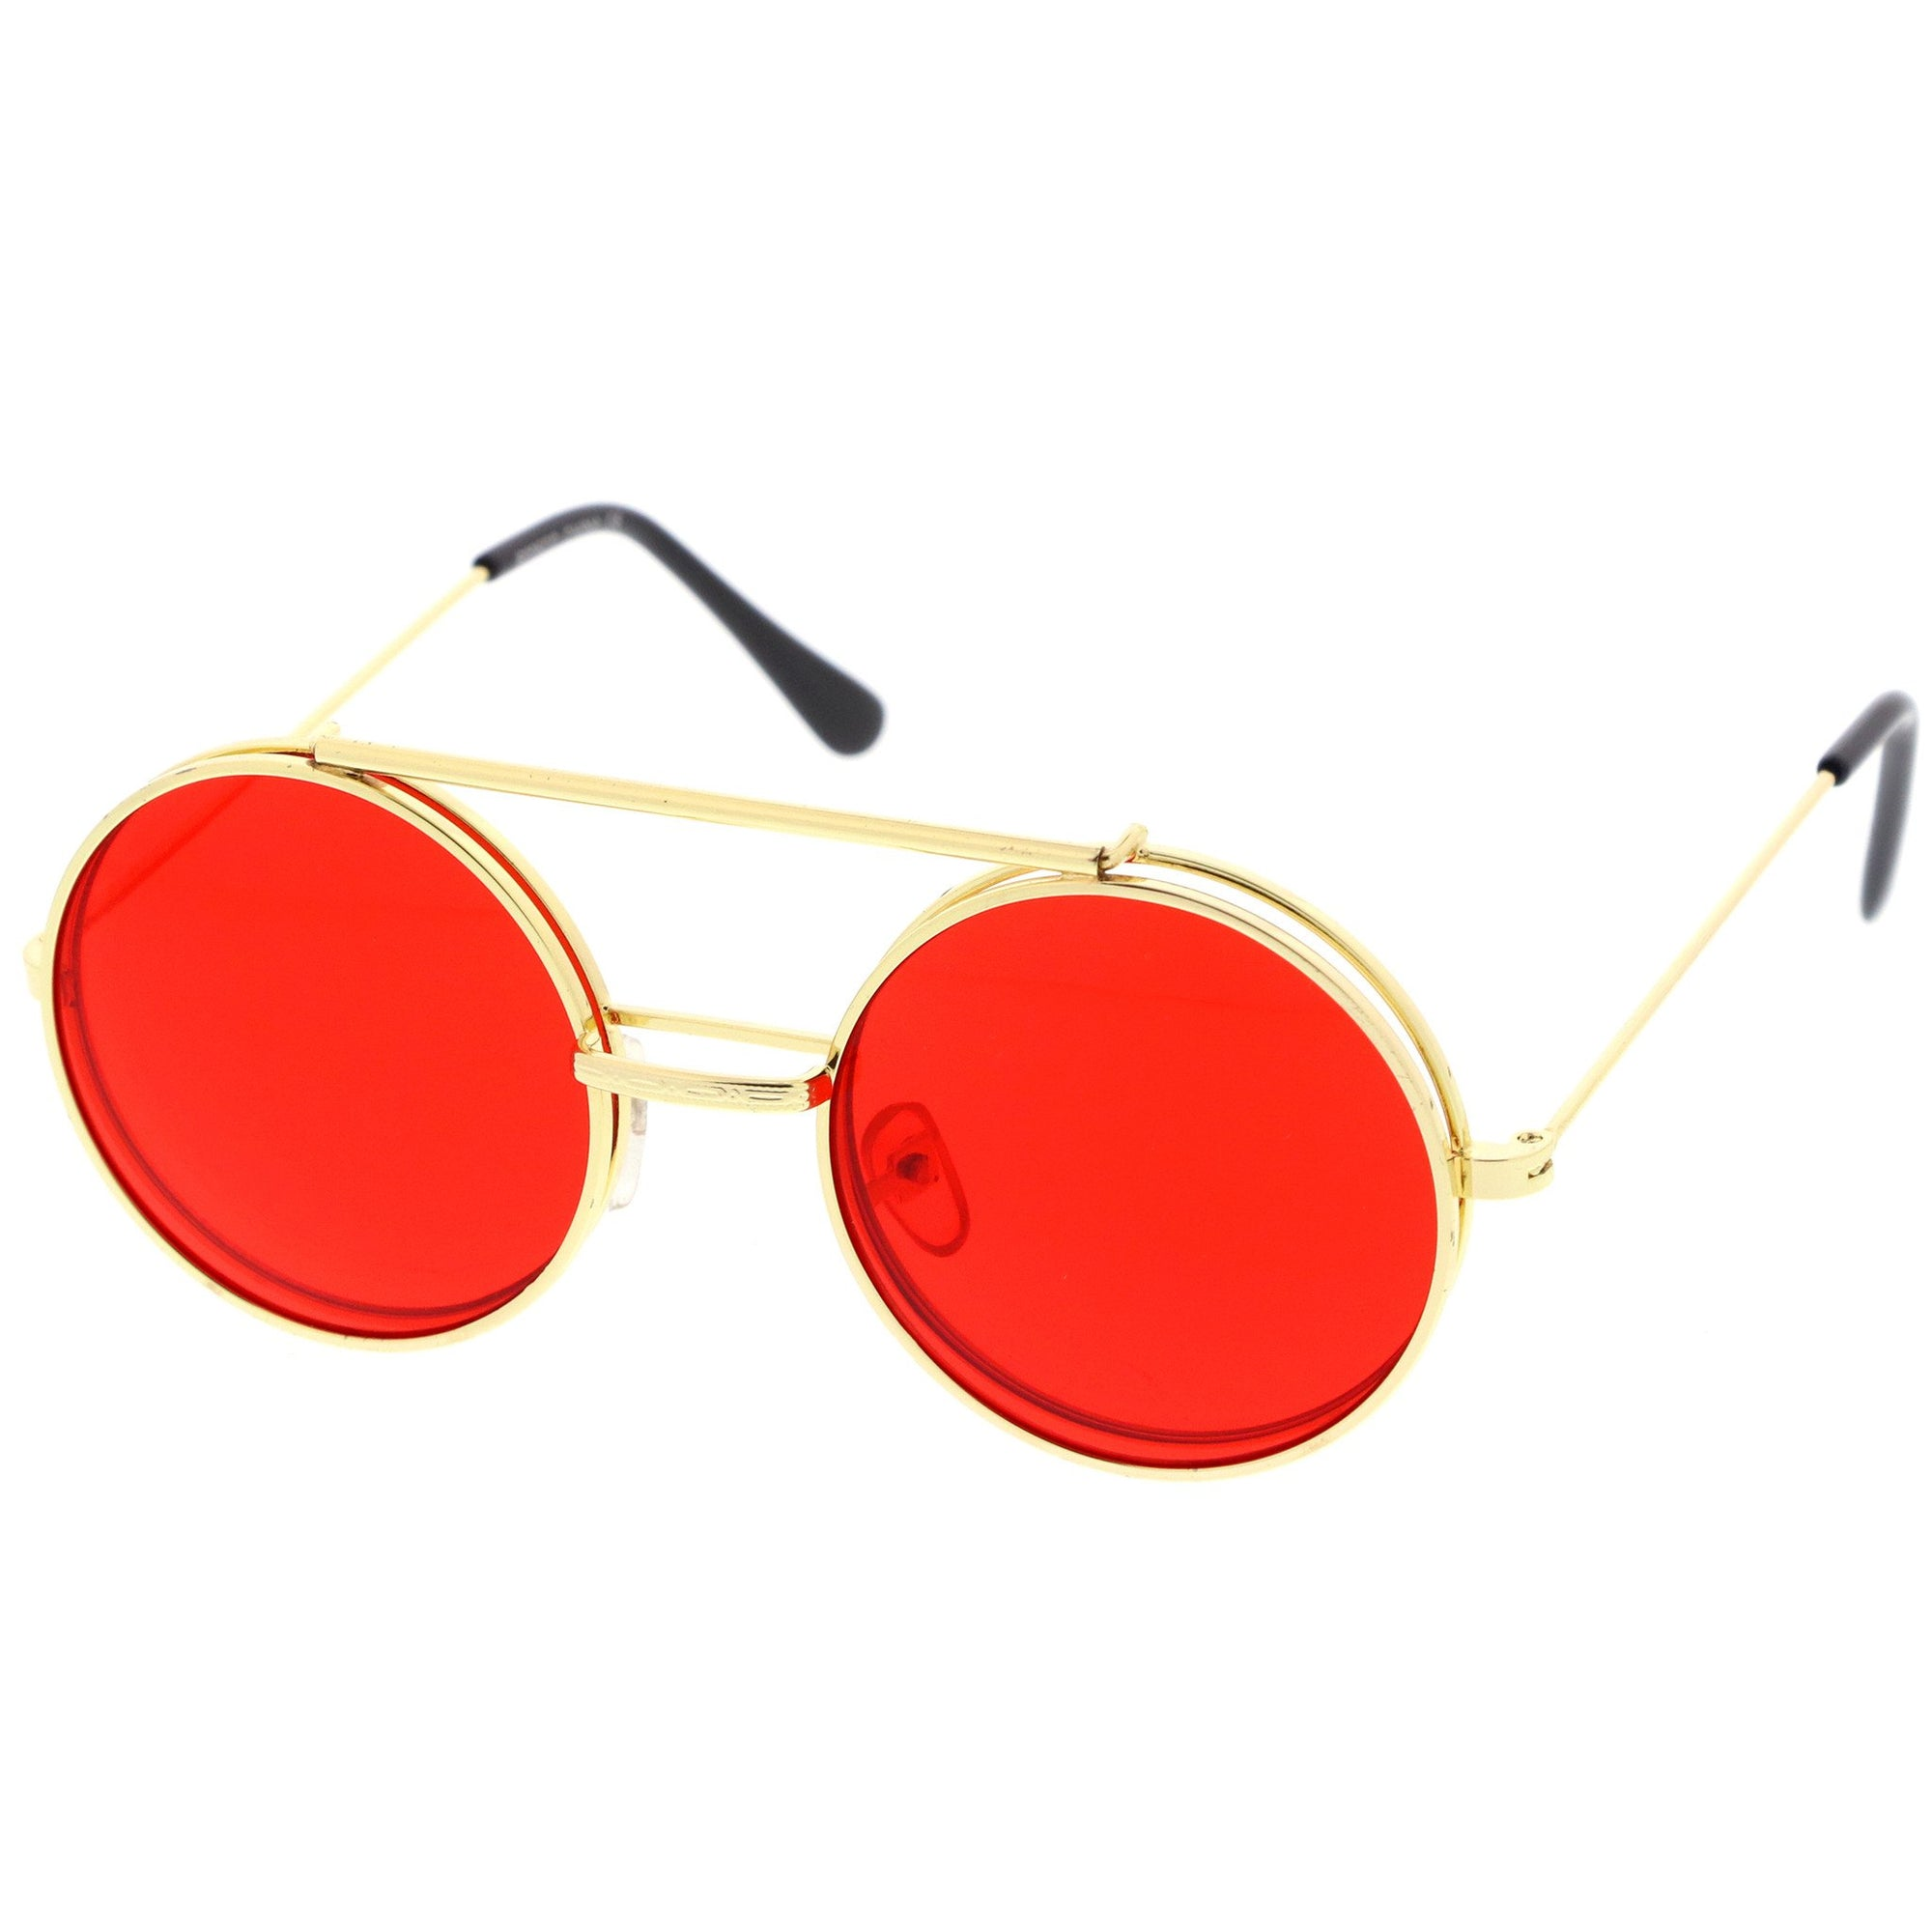 6b91debb2fd ... Circle Round Flip Up Vintage Sunglasses 8793 · Gold Red · Gold Red